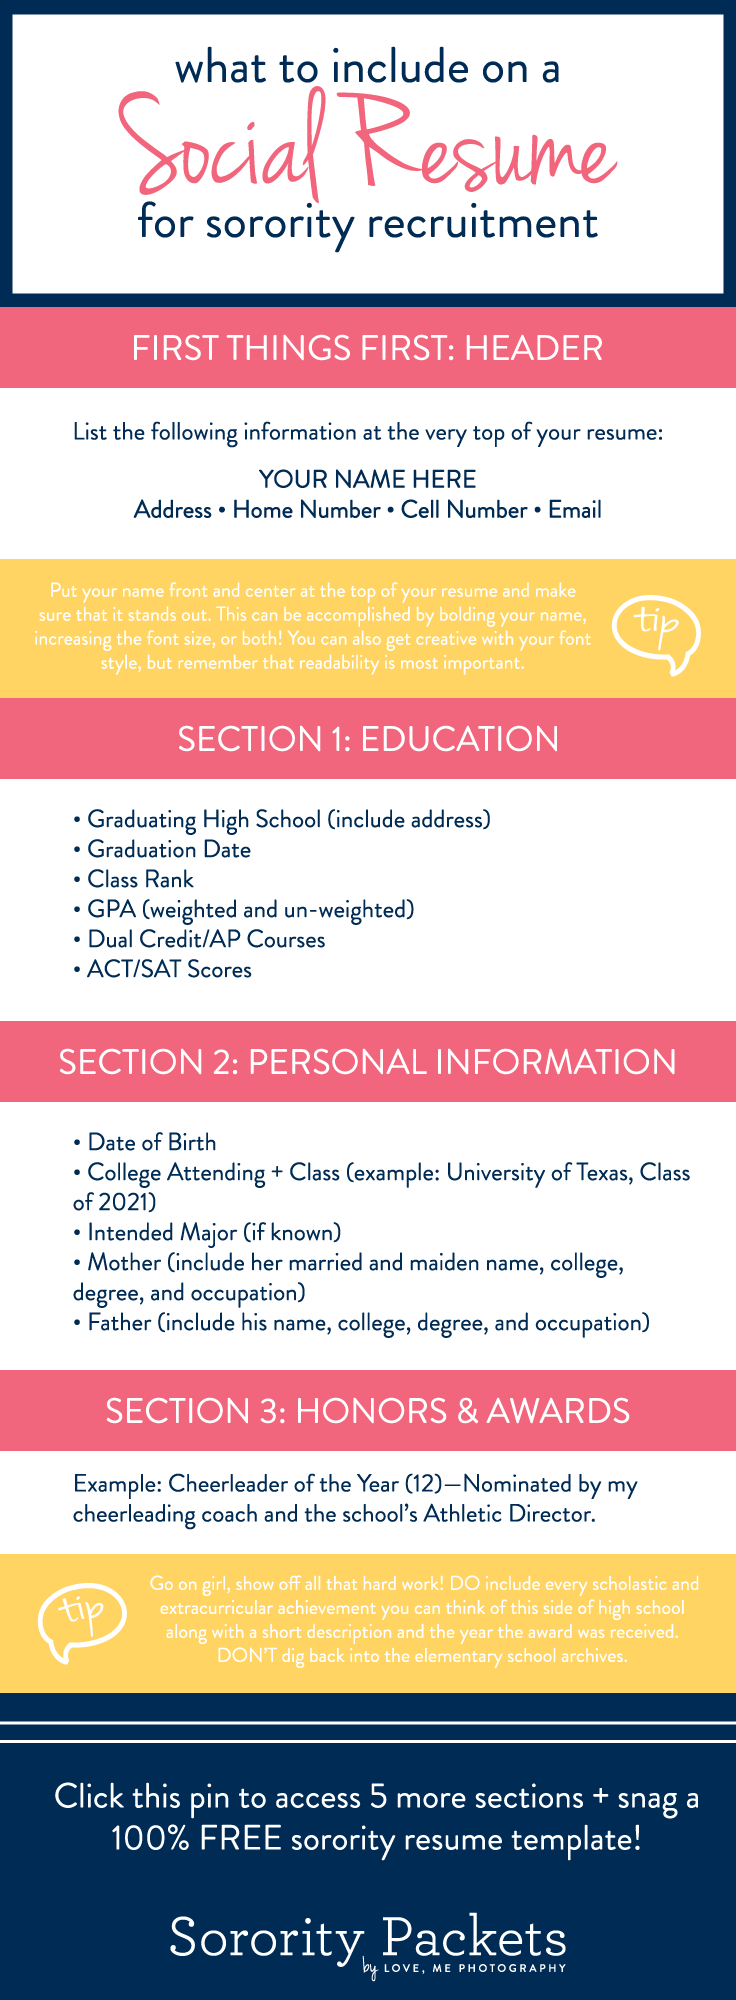 What To Include On A Social Resume For Sorority Recruitment Hint